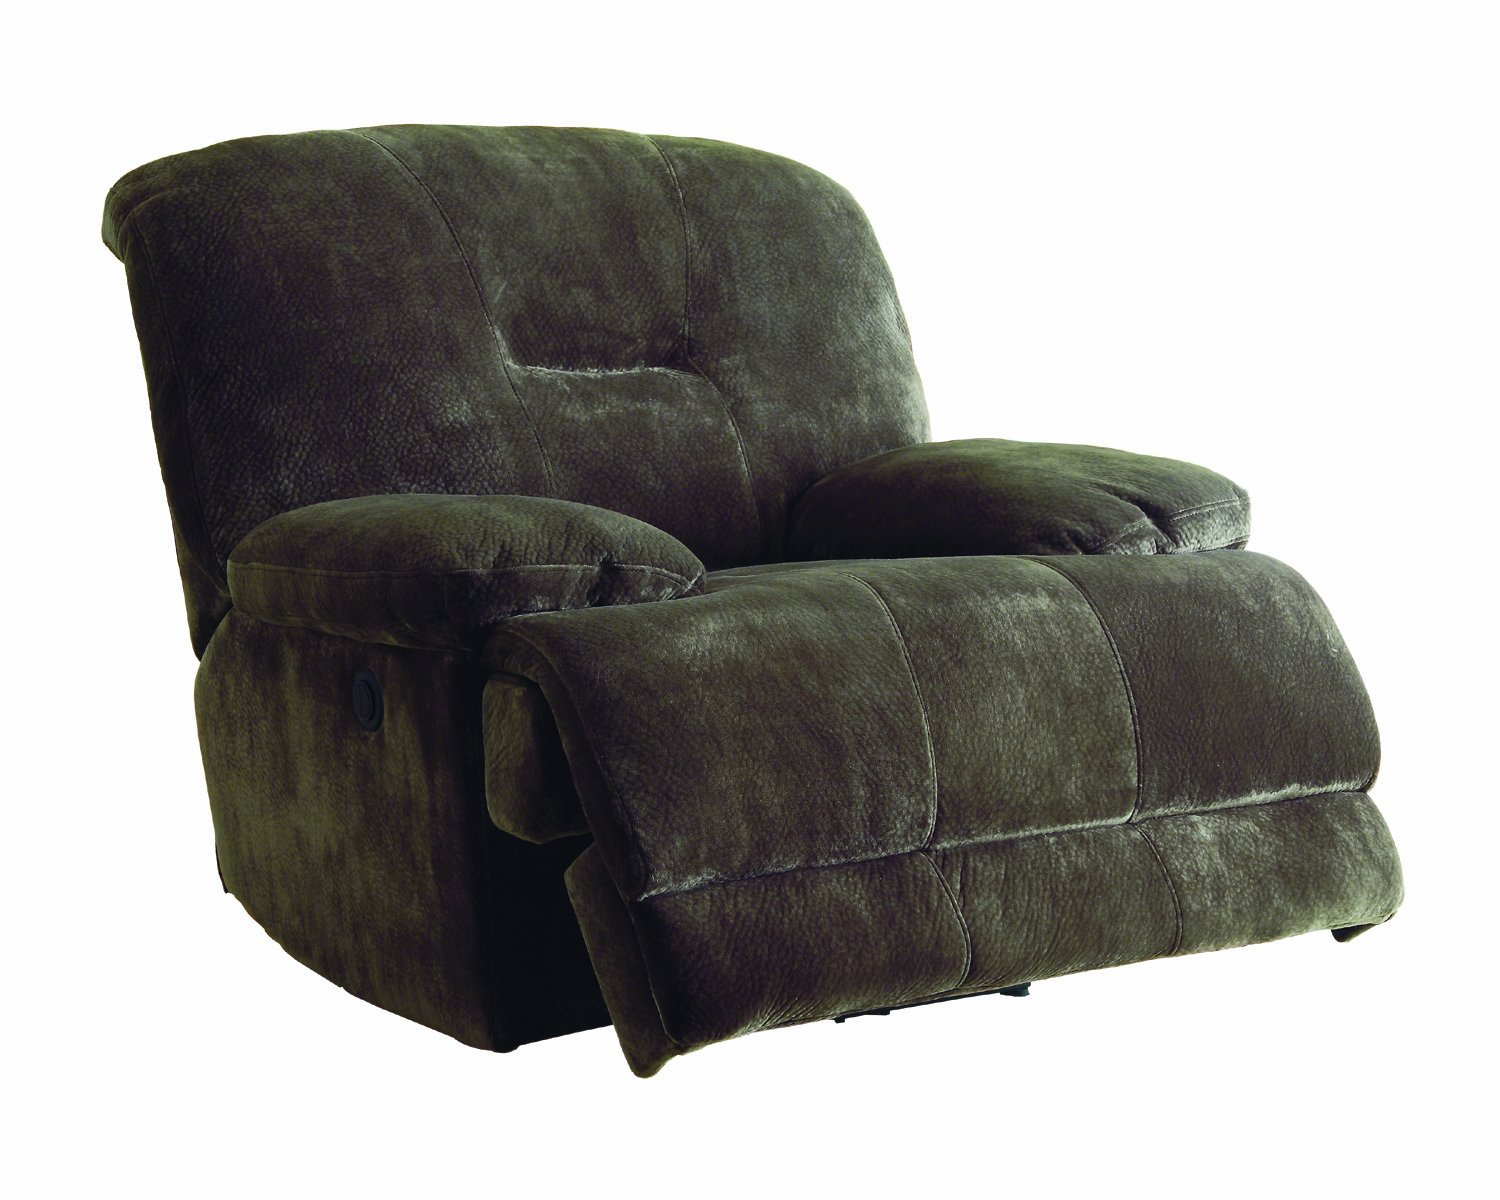 Homelegance 9723-1 Upholstered Glider Reclining Chair, Dark Brown, Textured with Plush Microfiber